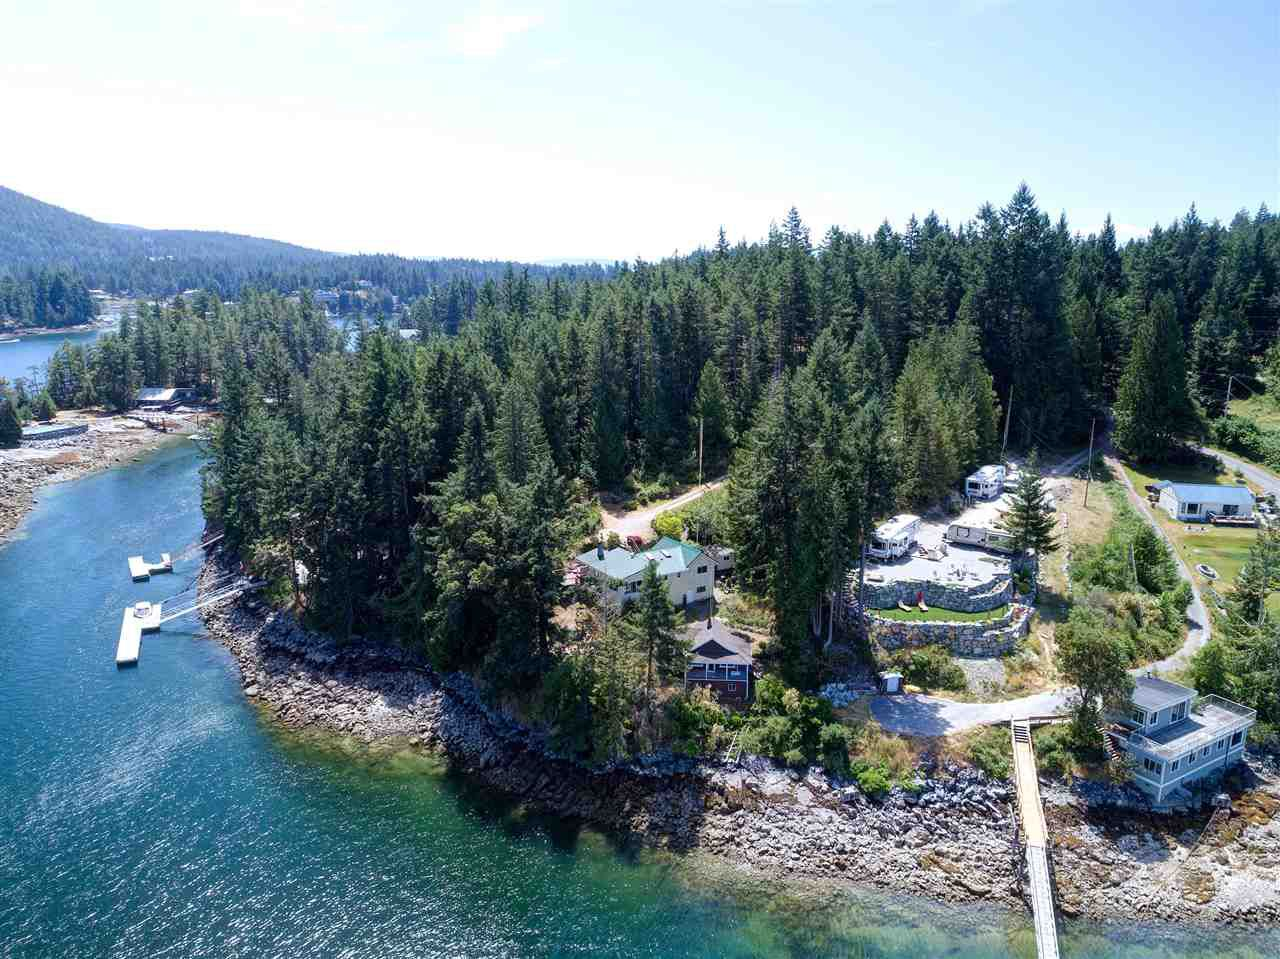 Photo 3: Photos: 13038 HASSAN Road in Madeira Park: Pender Harbour Egmont House for sale (Sunshine Coast)  : MLS®# R2187196